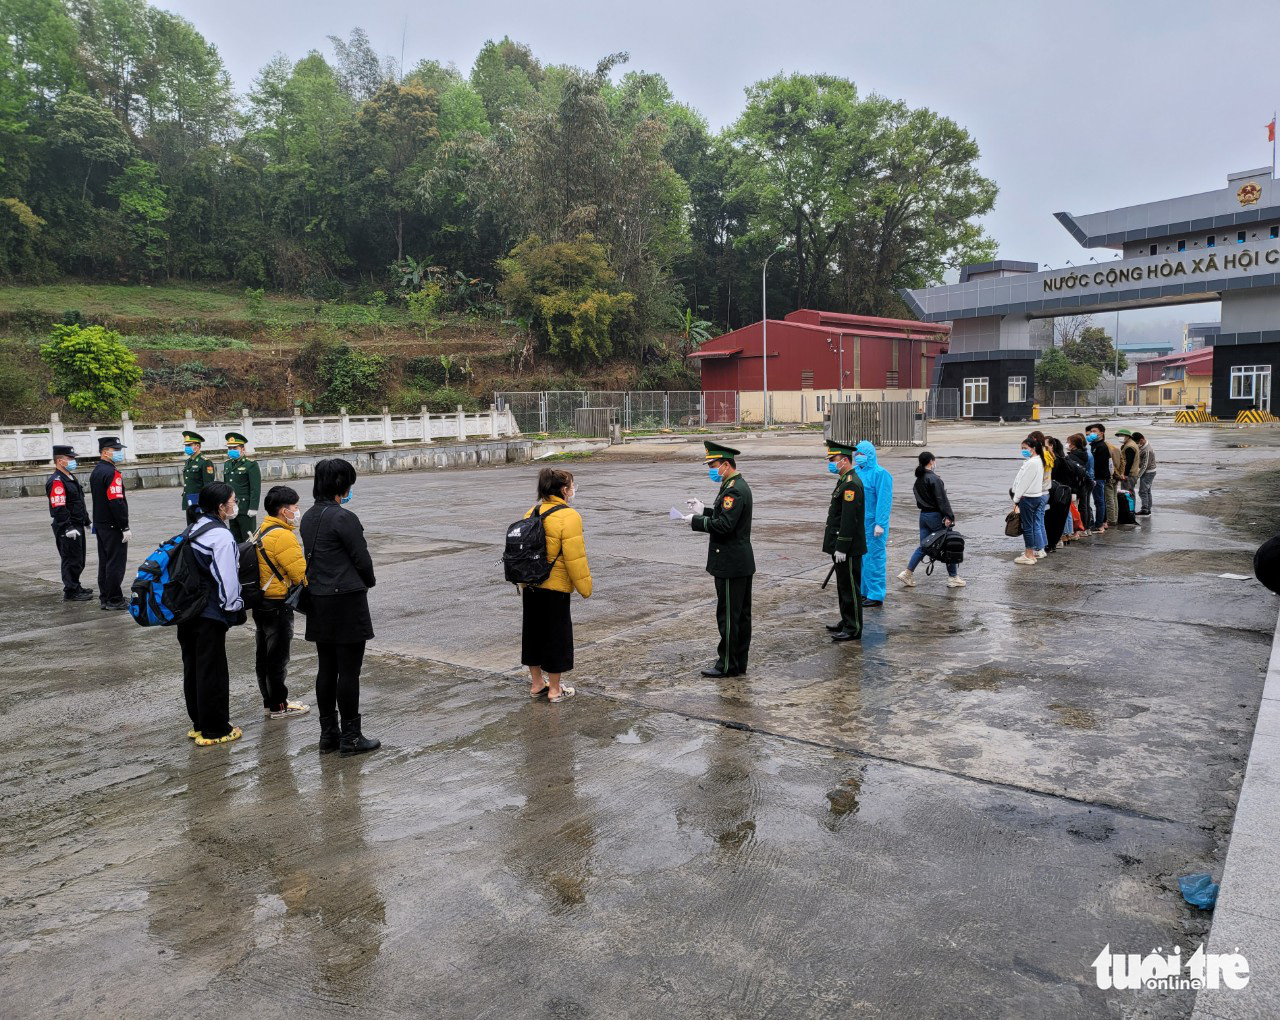 Vietnamese border jumpers are handed over by Chinese authorities to border guard officers in Cao Bang Province, Vietnam, February 28, 2021. Photo: Xuan Chien / Tuoi Tre